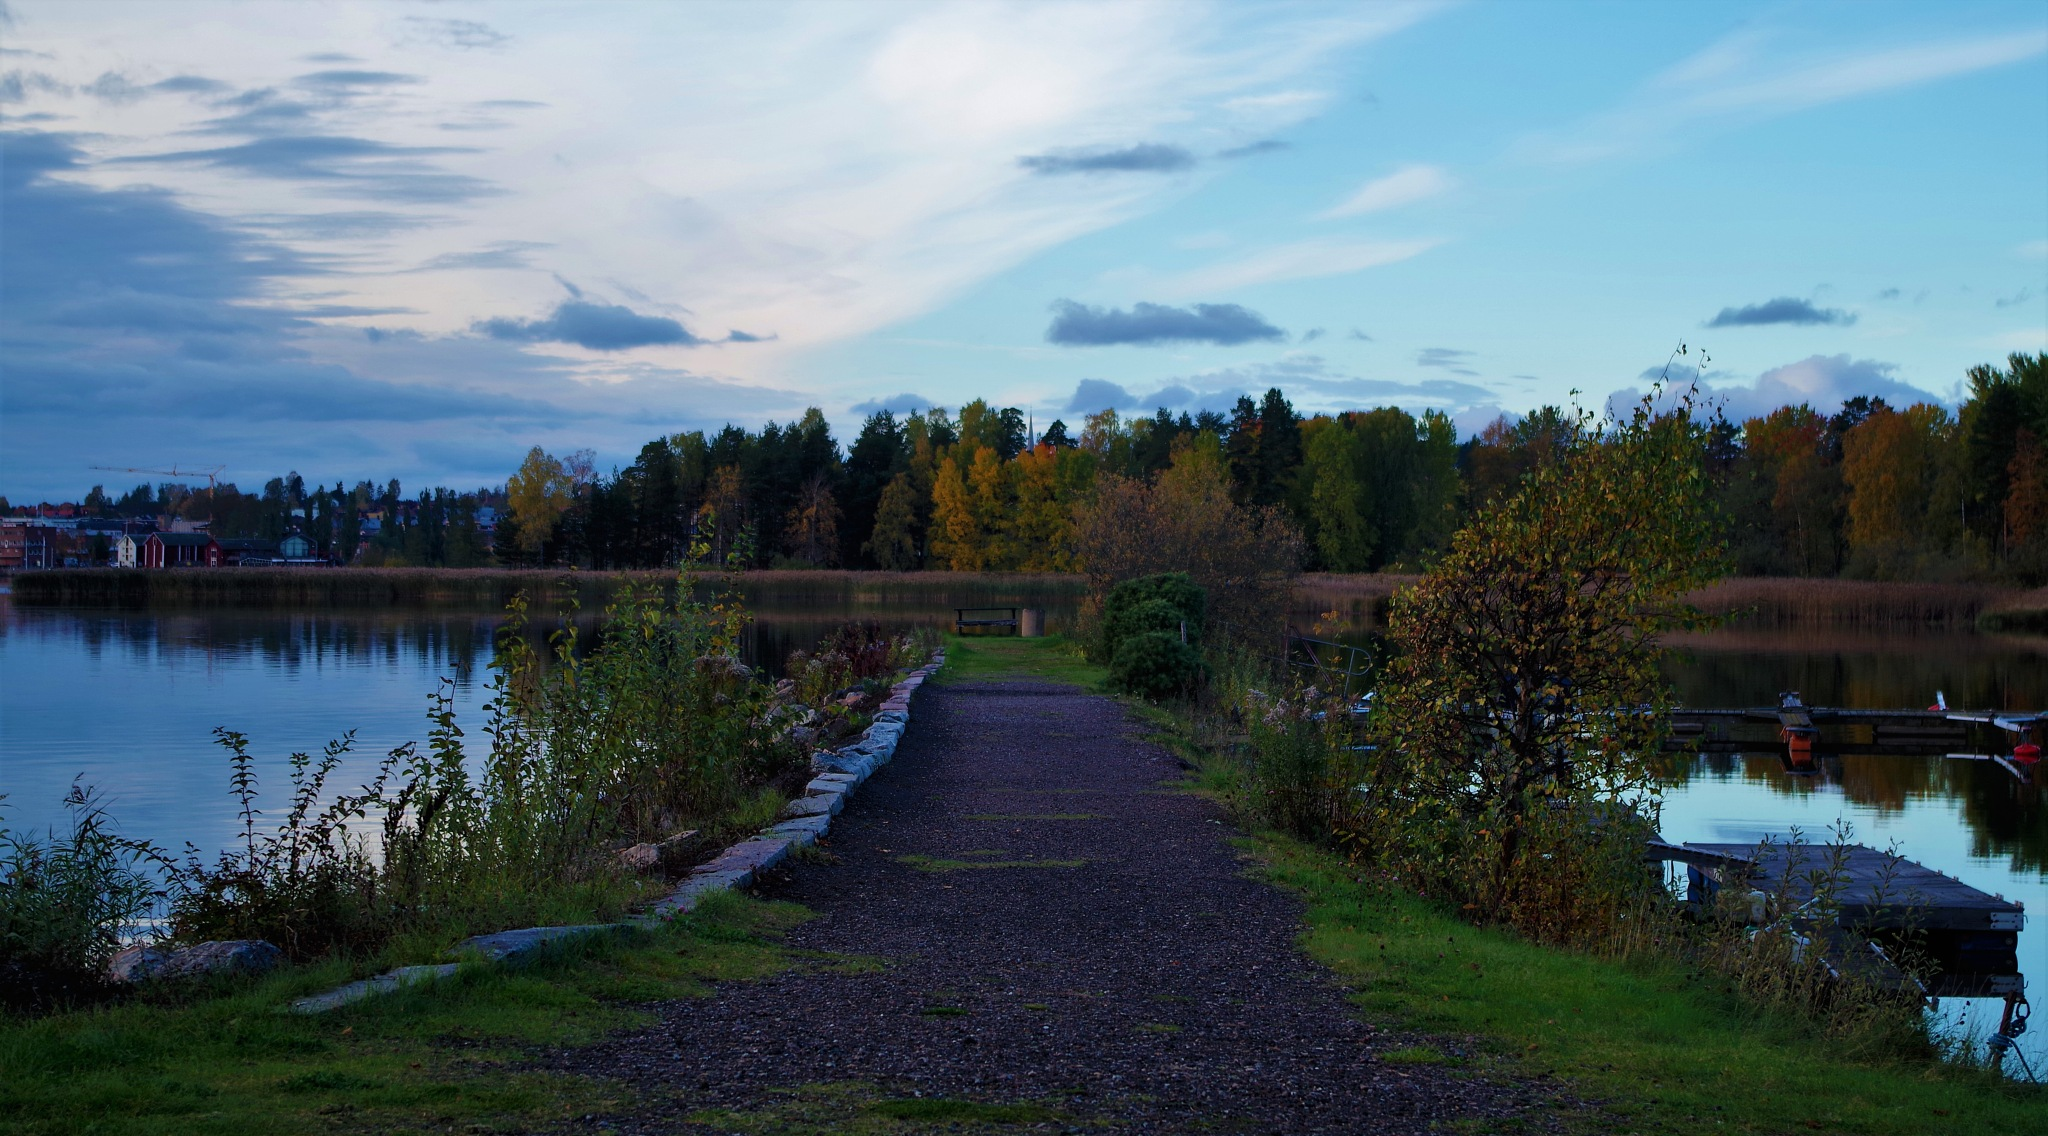 Fall in Arvika by Ina Matilda Tomasson